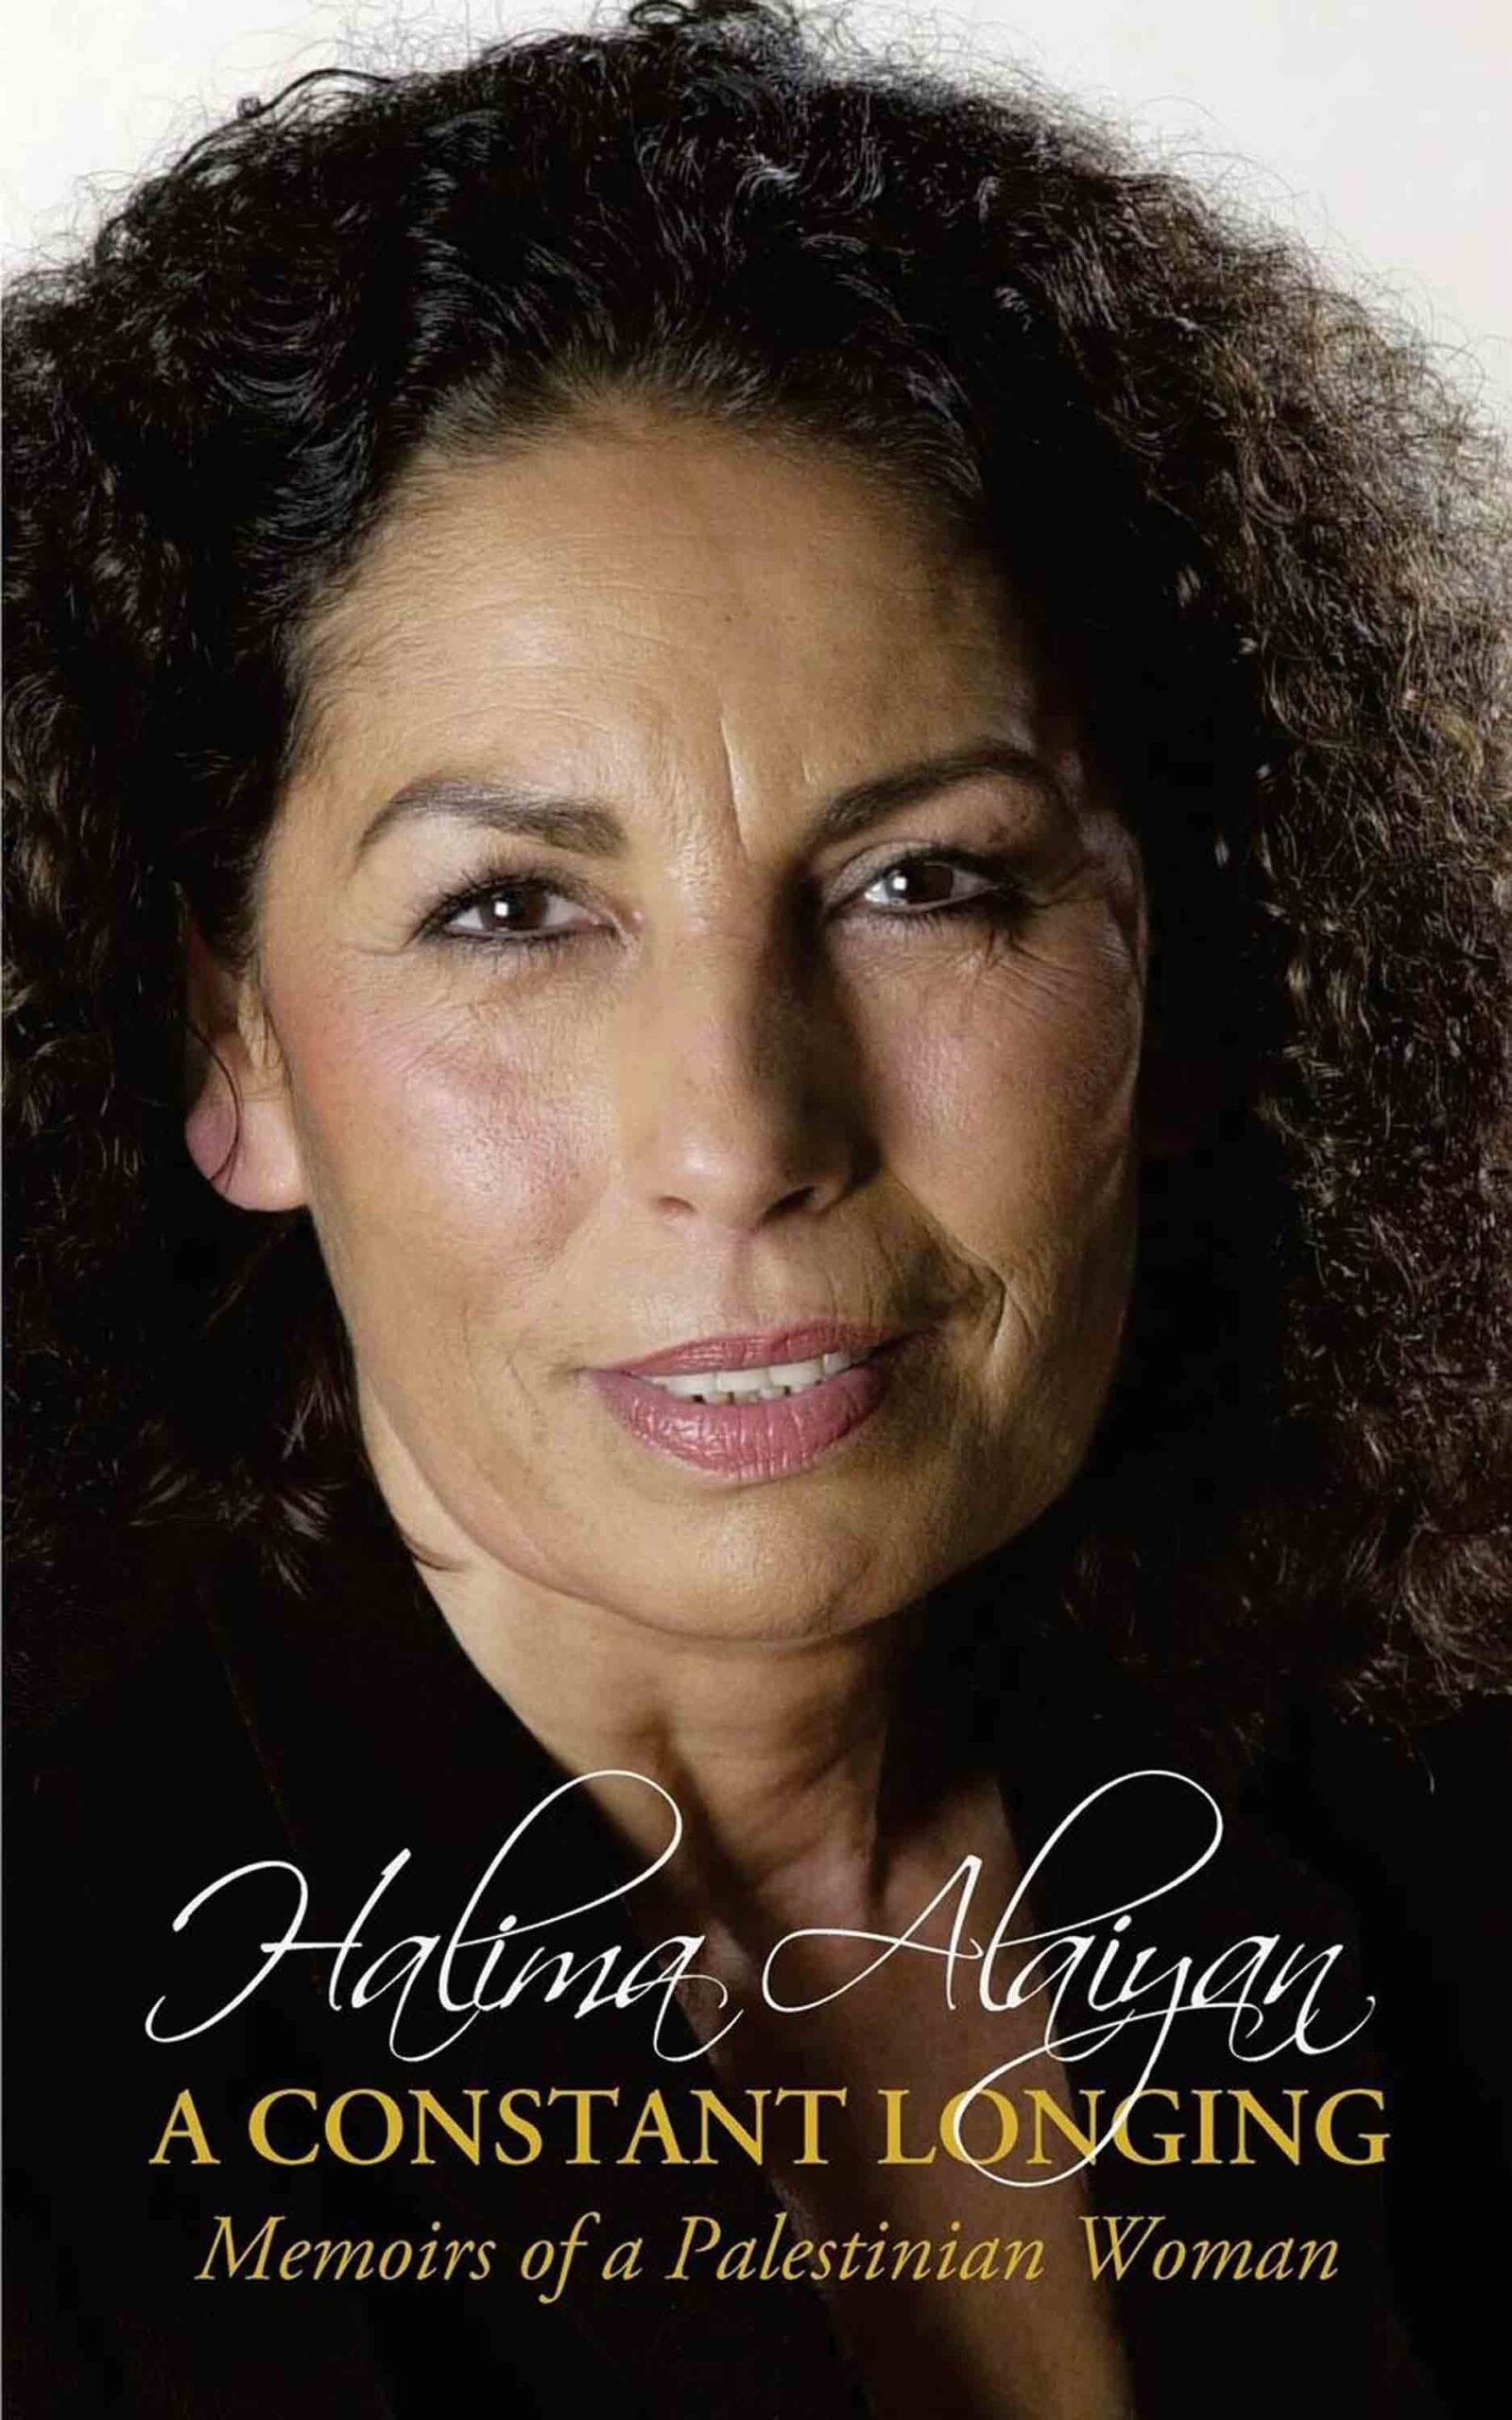 A Constant Longing – Memoirs of a Palestinian Woman